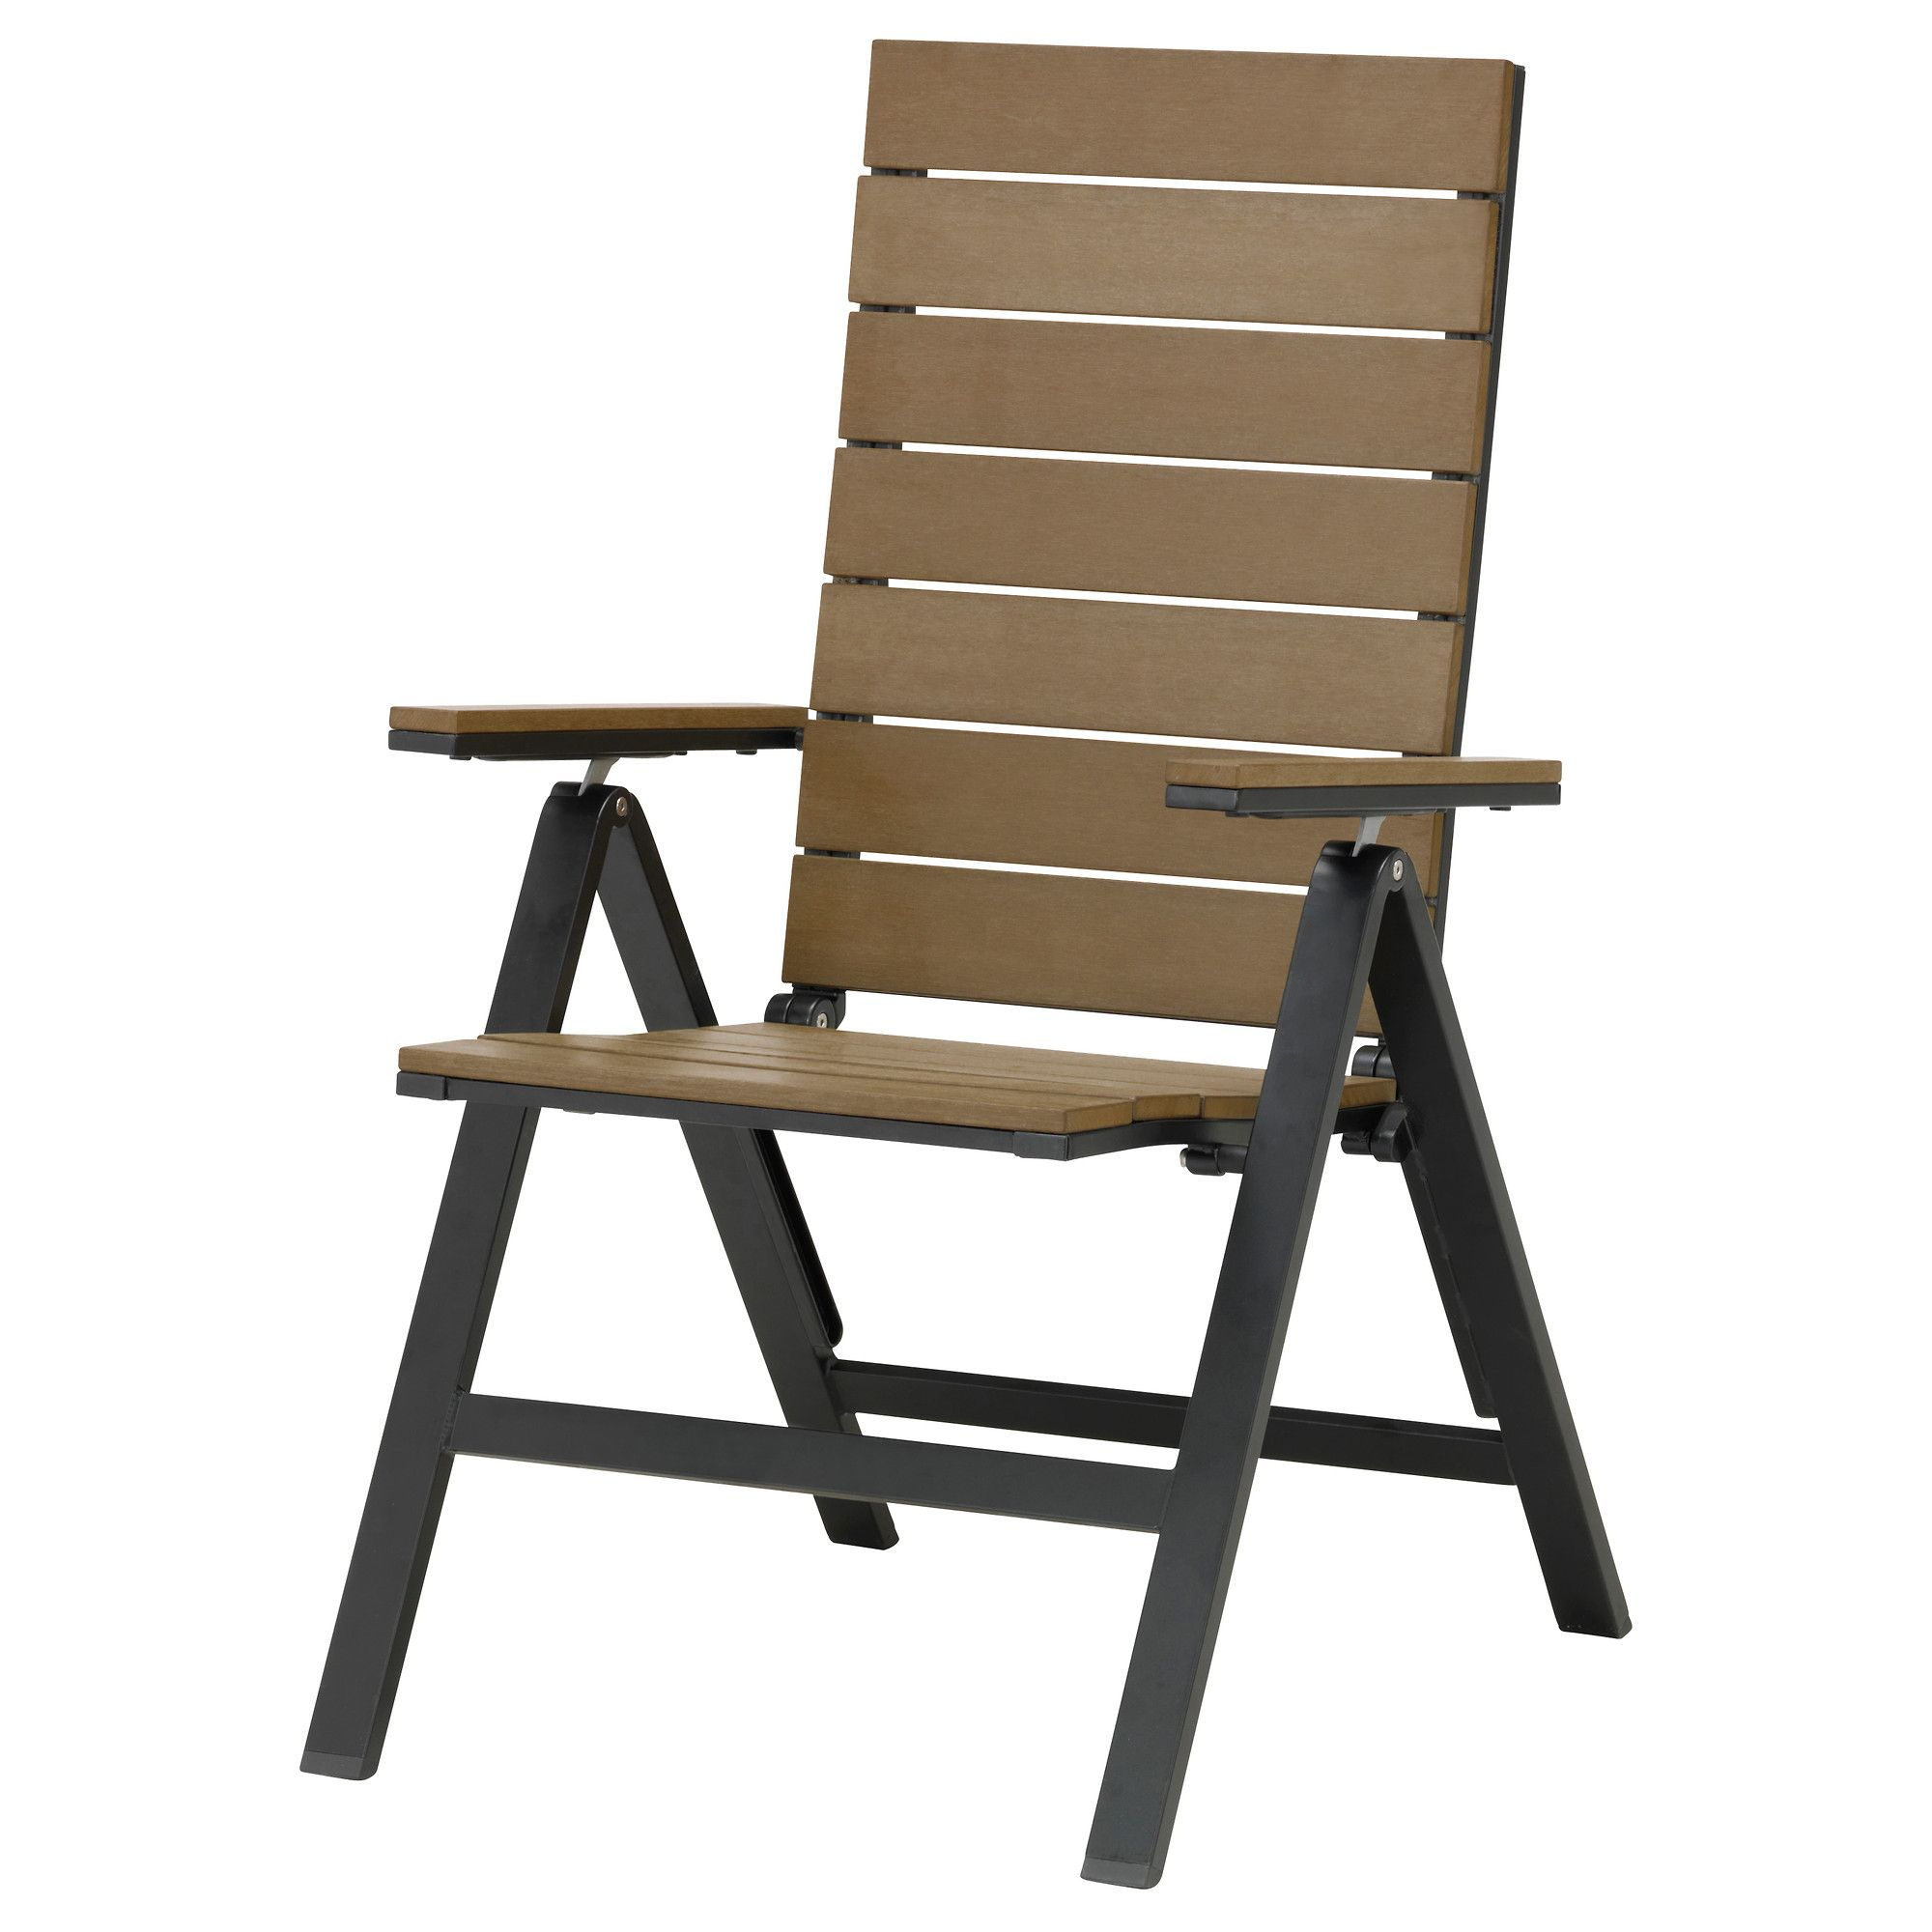 Awesome Falster Reclining Chair Black Brown Ikea 99 Whole Thing Creativecarmelina Interior Chair Design Creativecarmelinacom